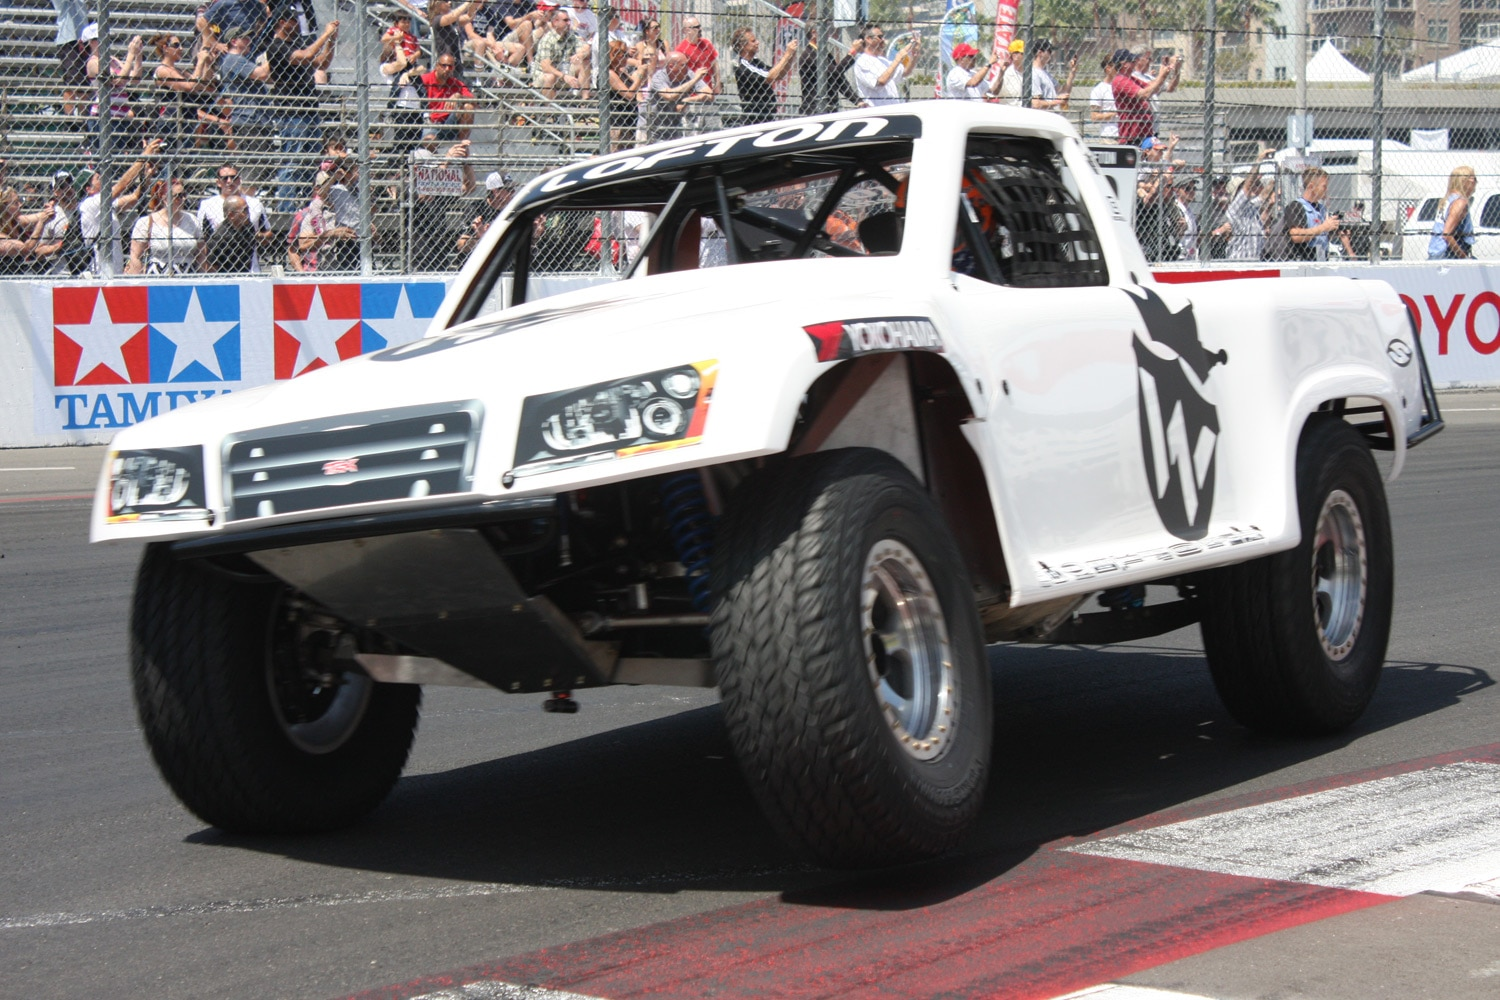 1304OR 32+Robby Gordon SST Stadium Super Trucks 2013 Long Beach Grand Prix